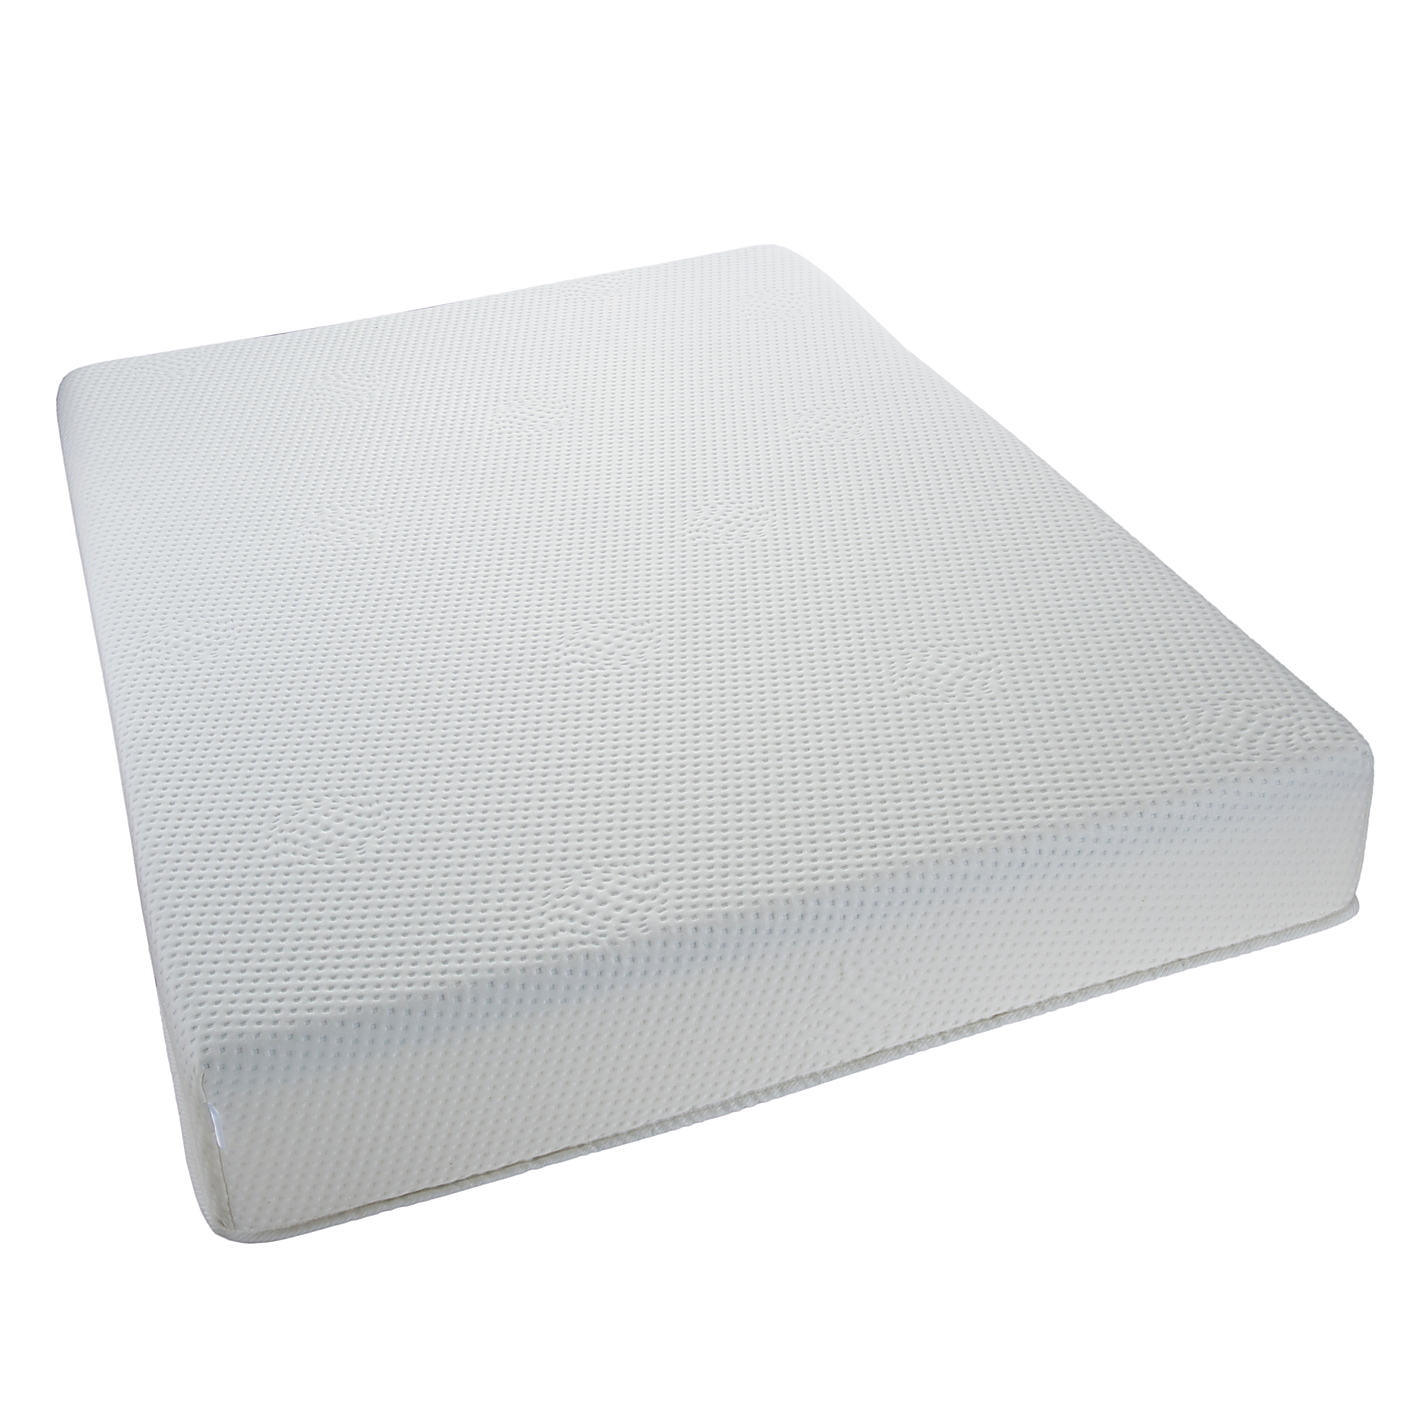 John Lewis Memory Collection Contour Cool Support Foam Mattress Medium Double Online